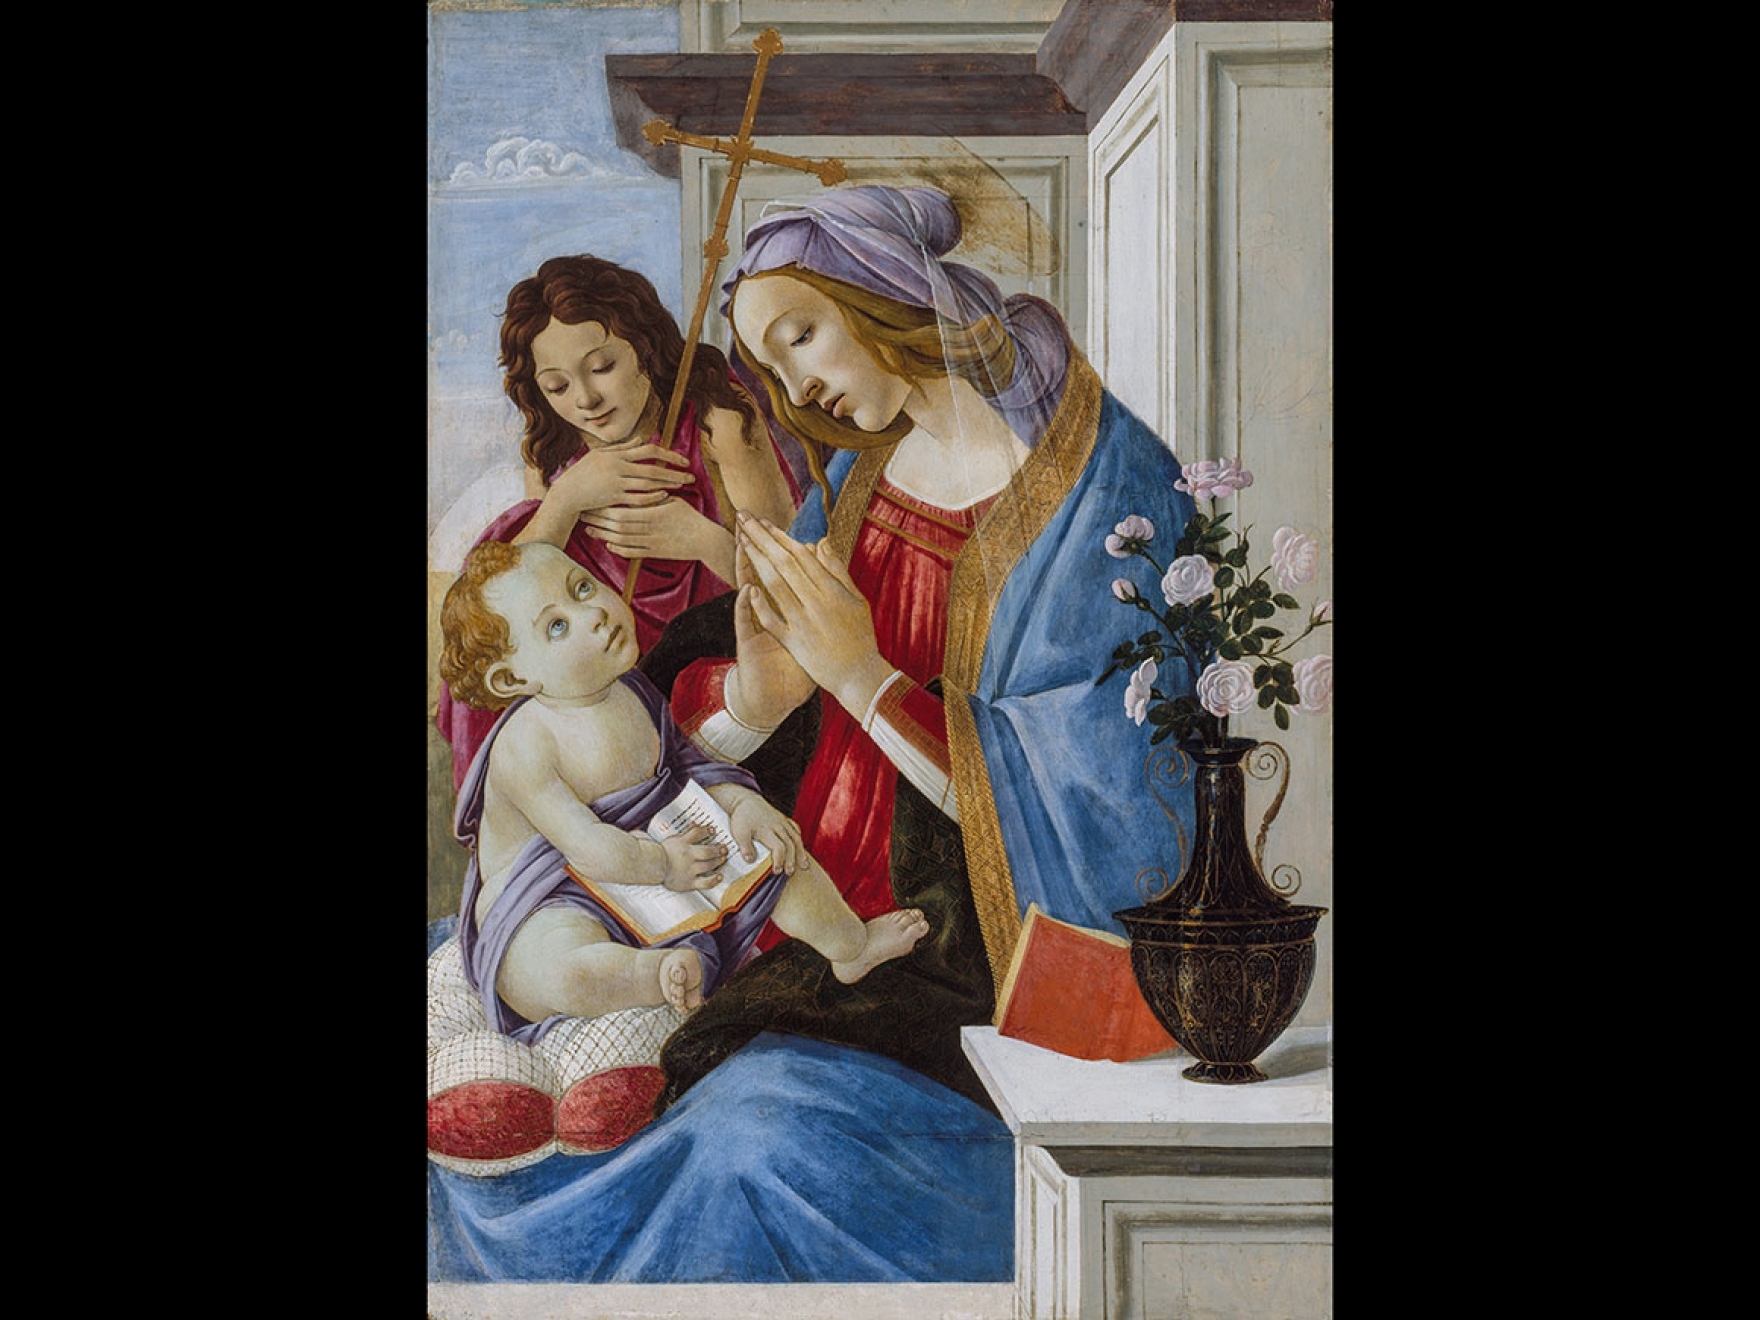 Sandro Botticelli's painting, Virgin and Child with Saint John the Baptist, about 1500